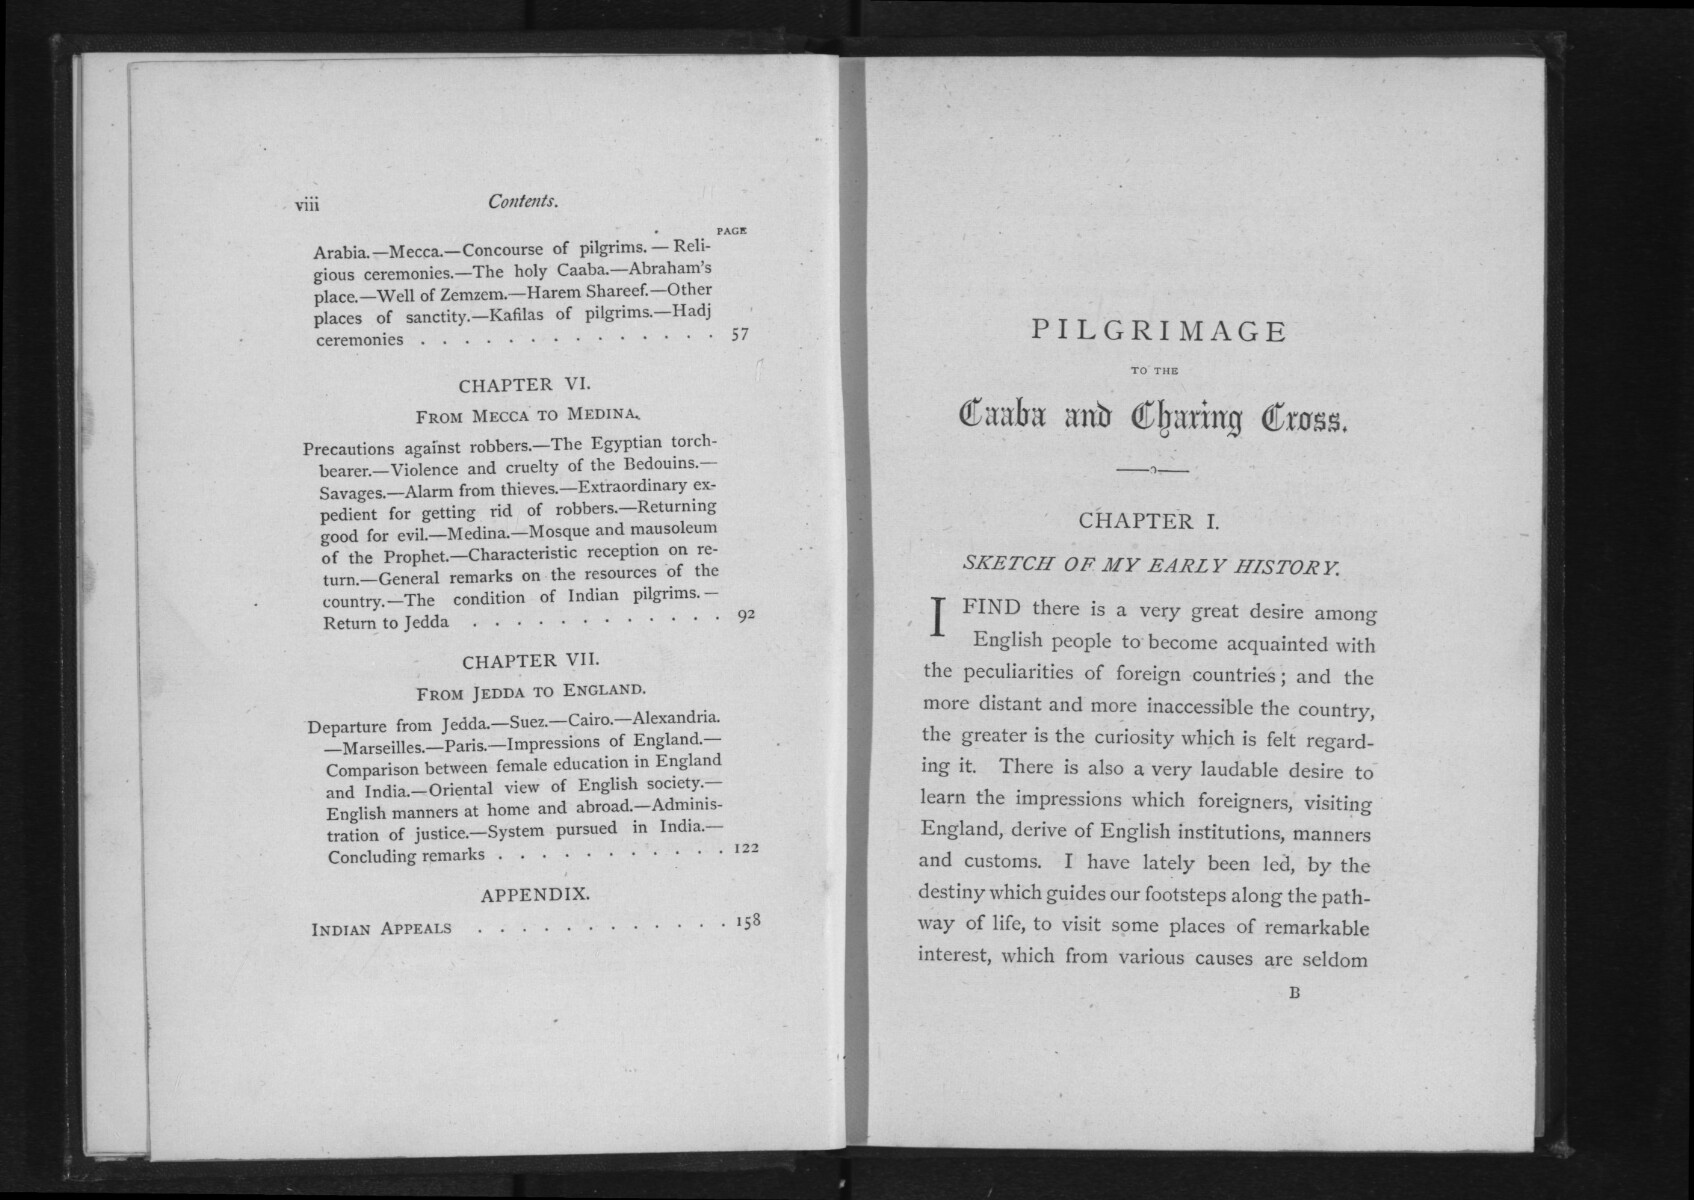 Pilgrimage to the Caaba and Charing Cross [F-1-7] (7/101) | Qatar